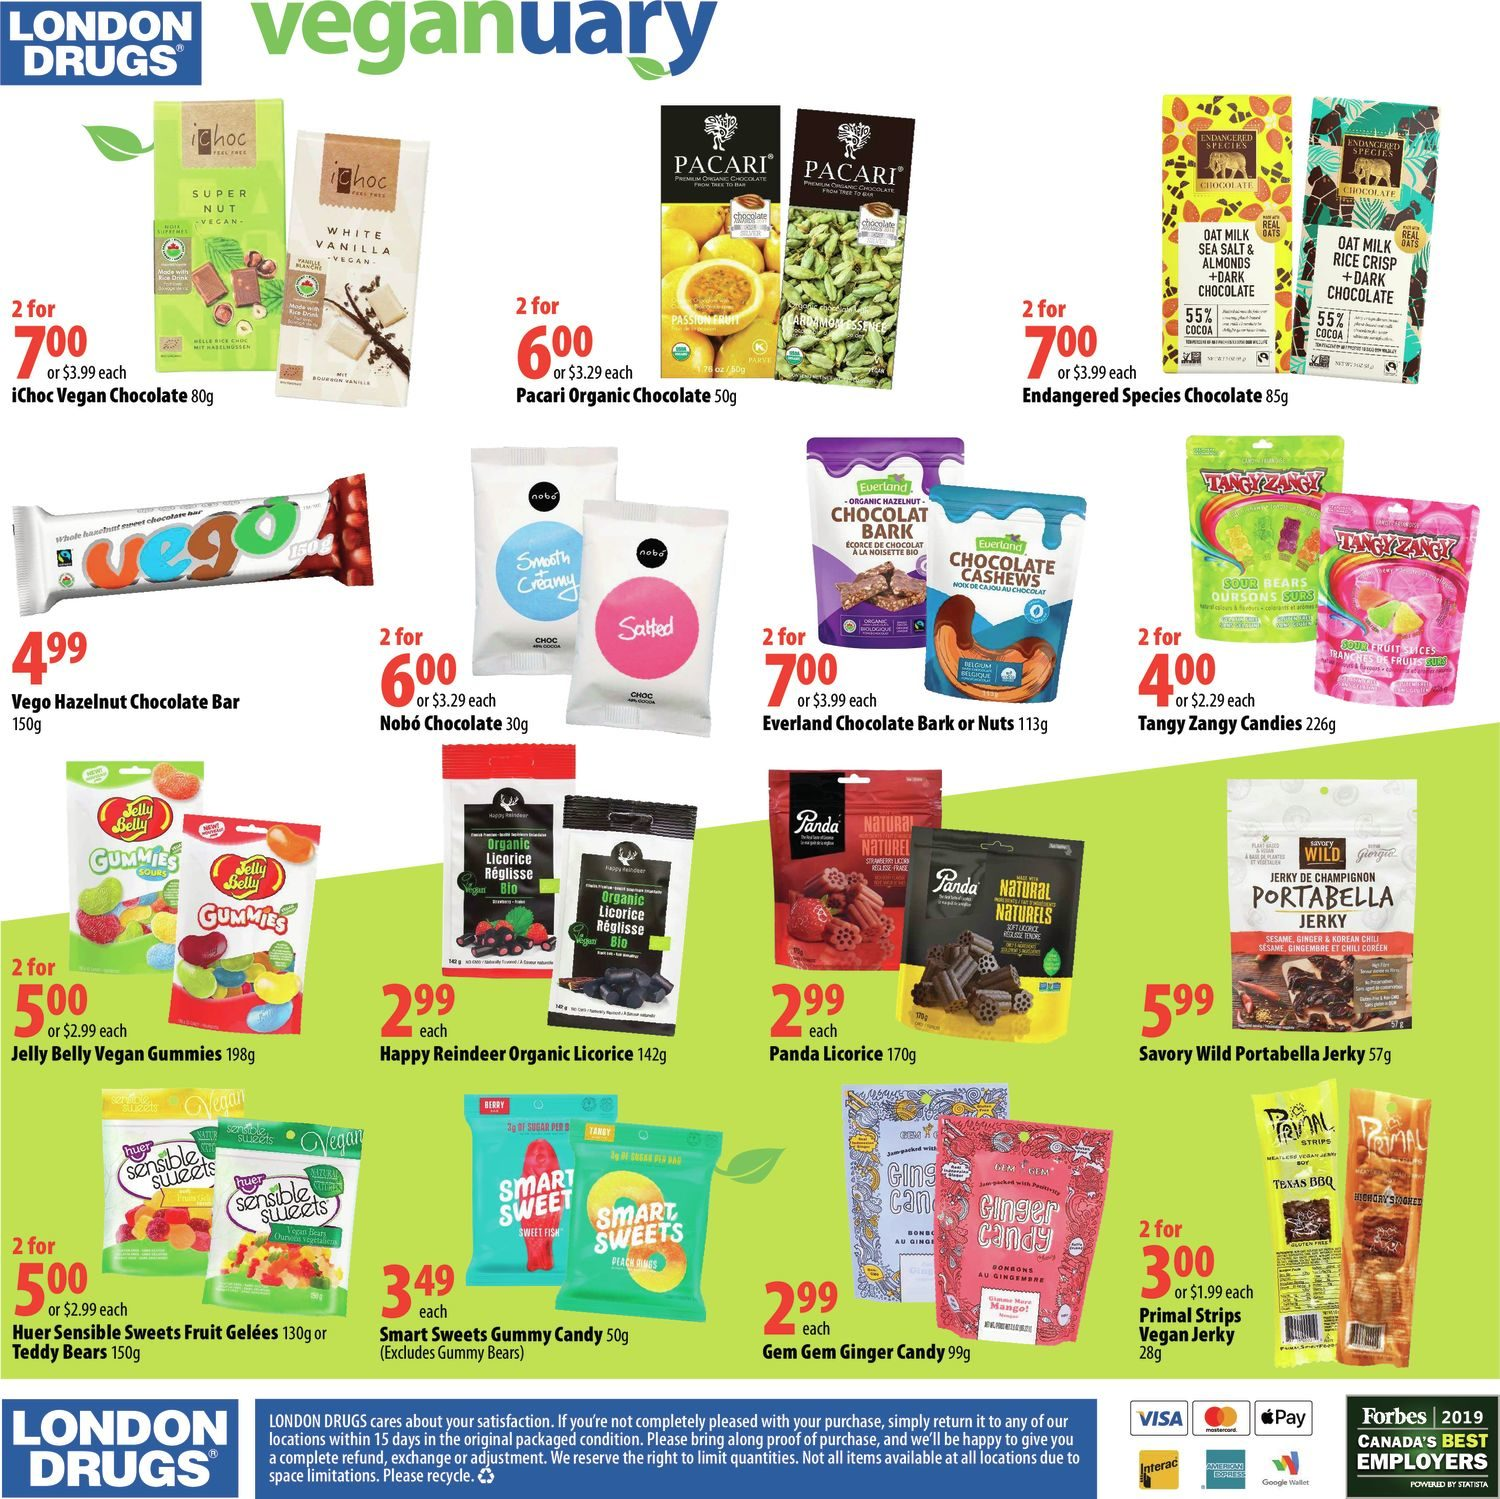 London Drugs - Veganuary - Page 8